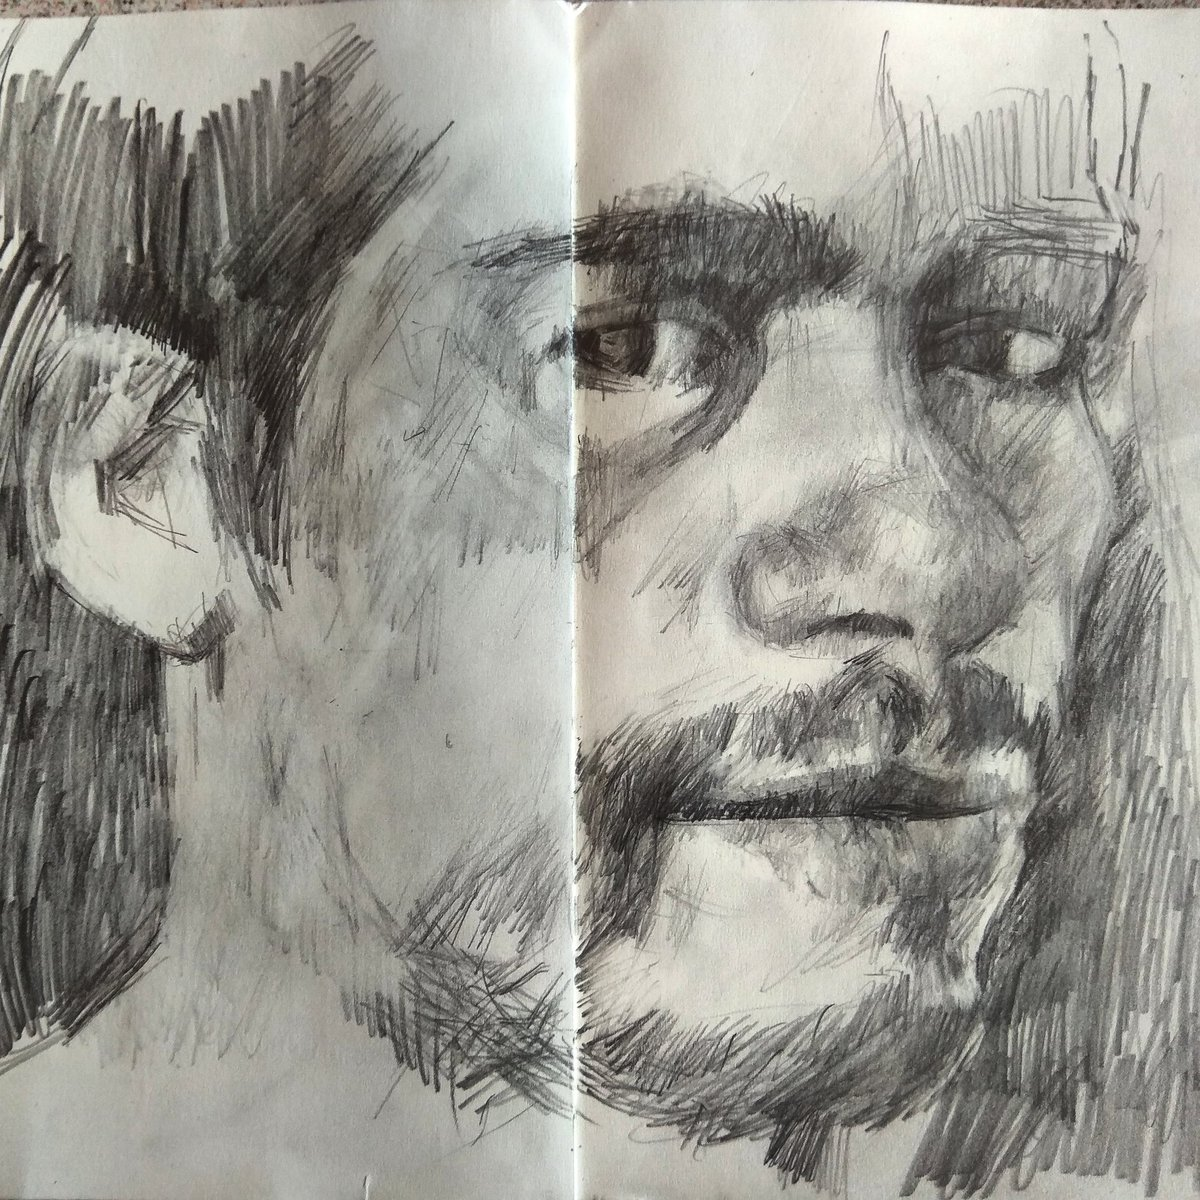 Portrait drawing, sketchbook #Covid_19 #lockdown #TweetOfTheDay #artistsontwitter #painting #painter #paint #drawing #sketchbook #sketch #sketching #art #artist #artdaily #photooftheday #picoftheday #pencilportrait #graphitedrawing #inspiration #dailysketch